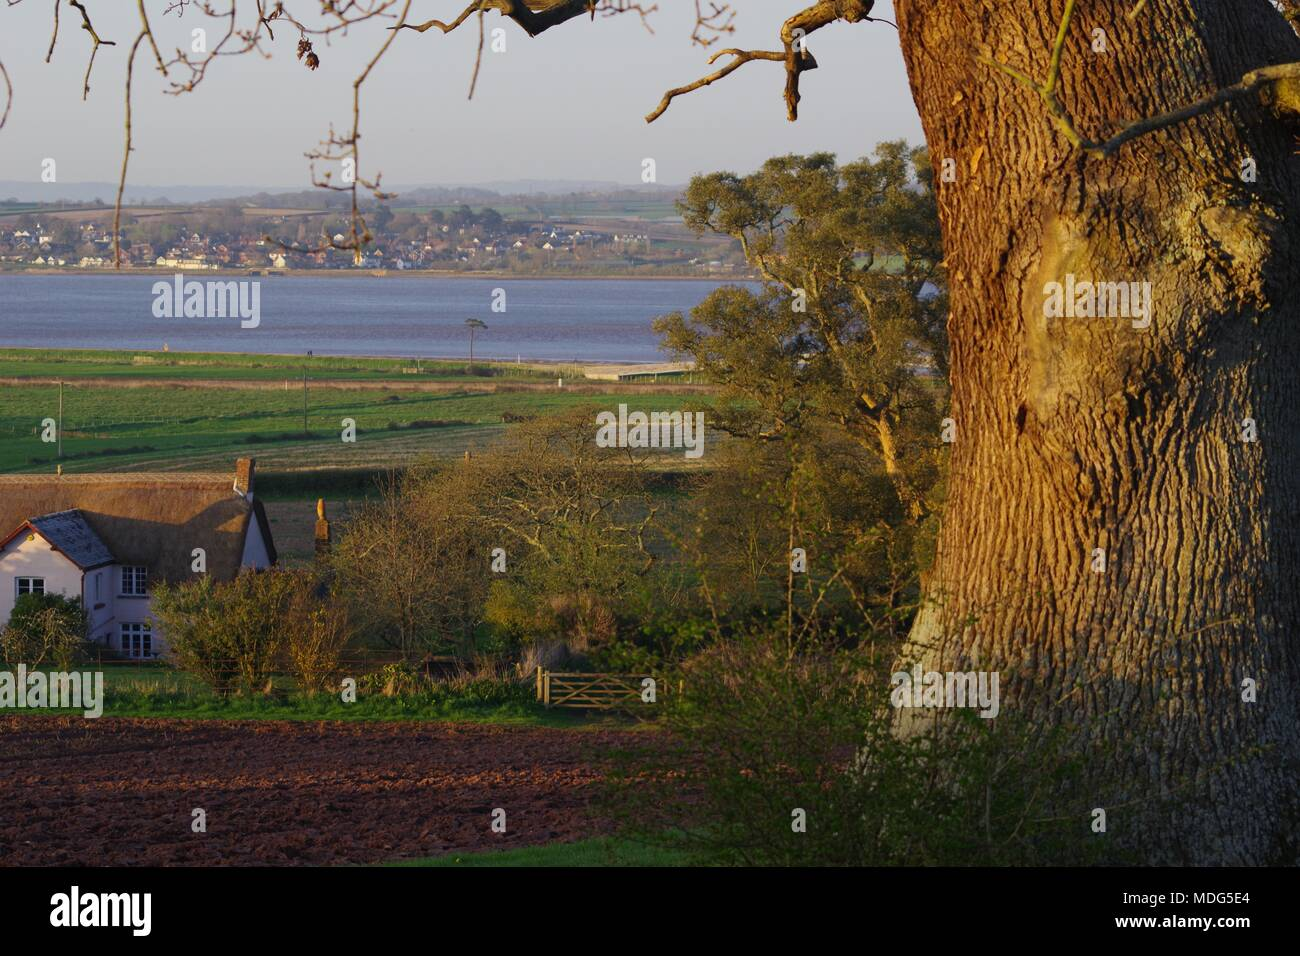 Mighty English Oak TreeTrunk (Quercus robur) by a Country Path through Devon Farmland. Exe Estuary on Distance. Powderham Castle, Devon, UK. - Stock Image